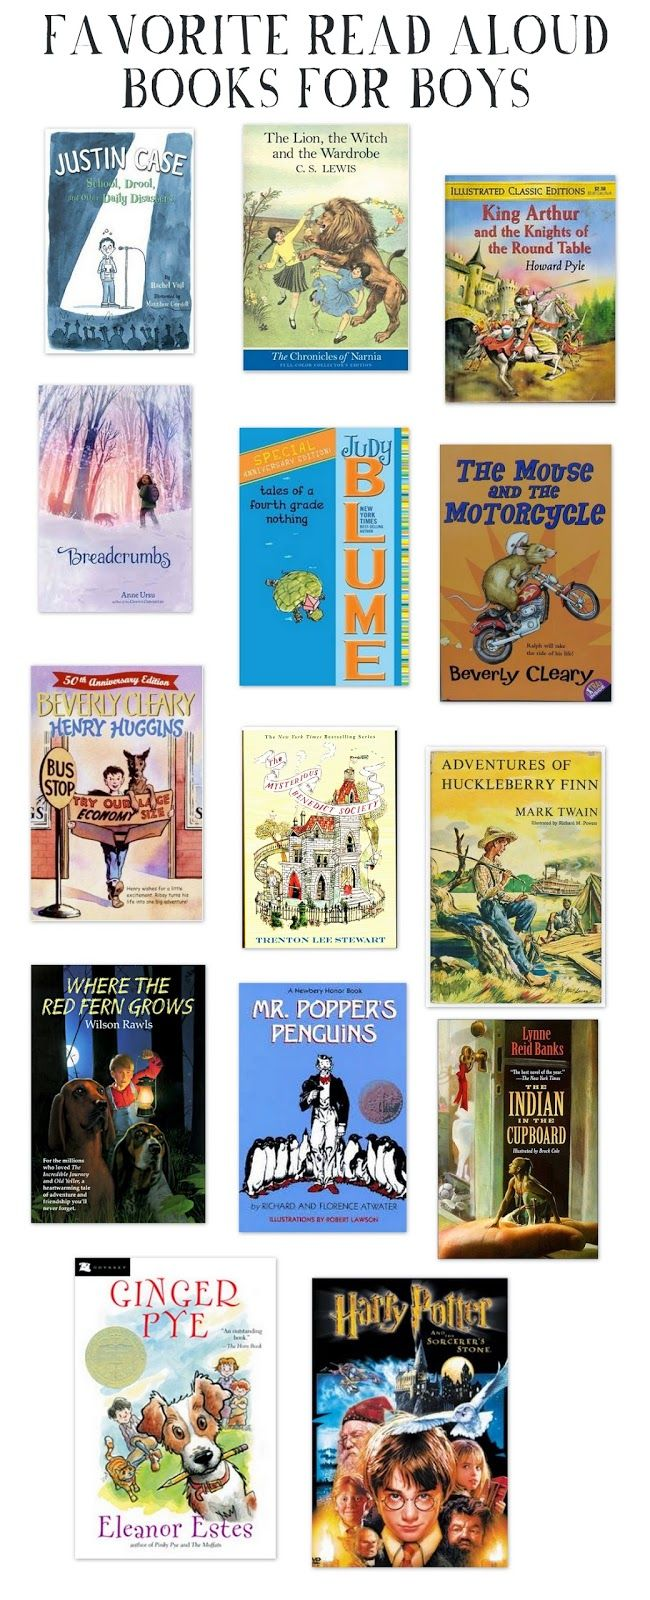 Some of my favorite memories with my children are those made at the end of the each day, snuggling beside them to read a story. I have always been a pretty avid reader and lover of great books and I'